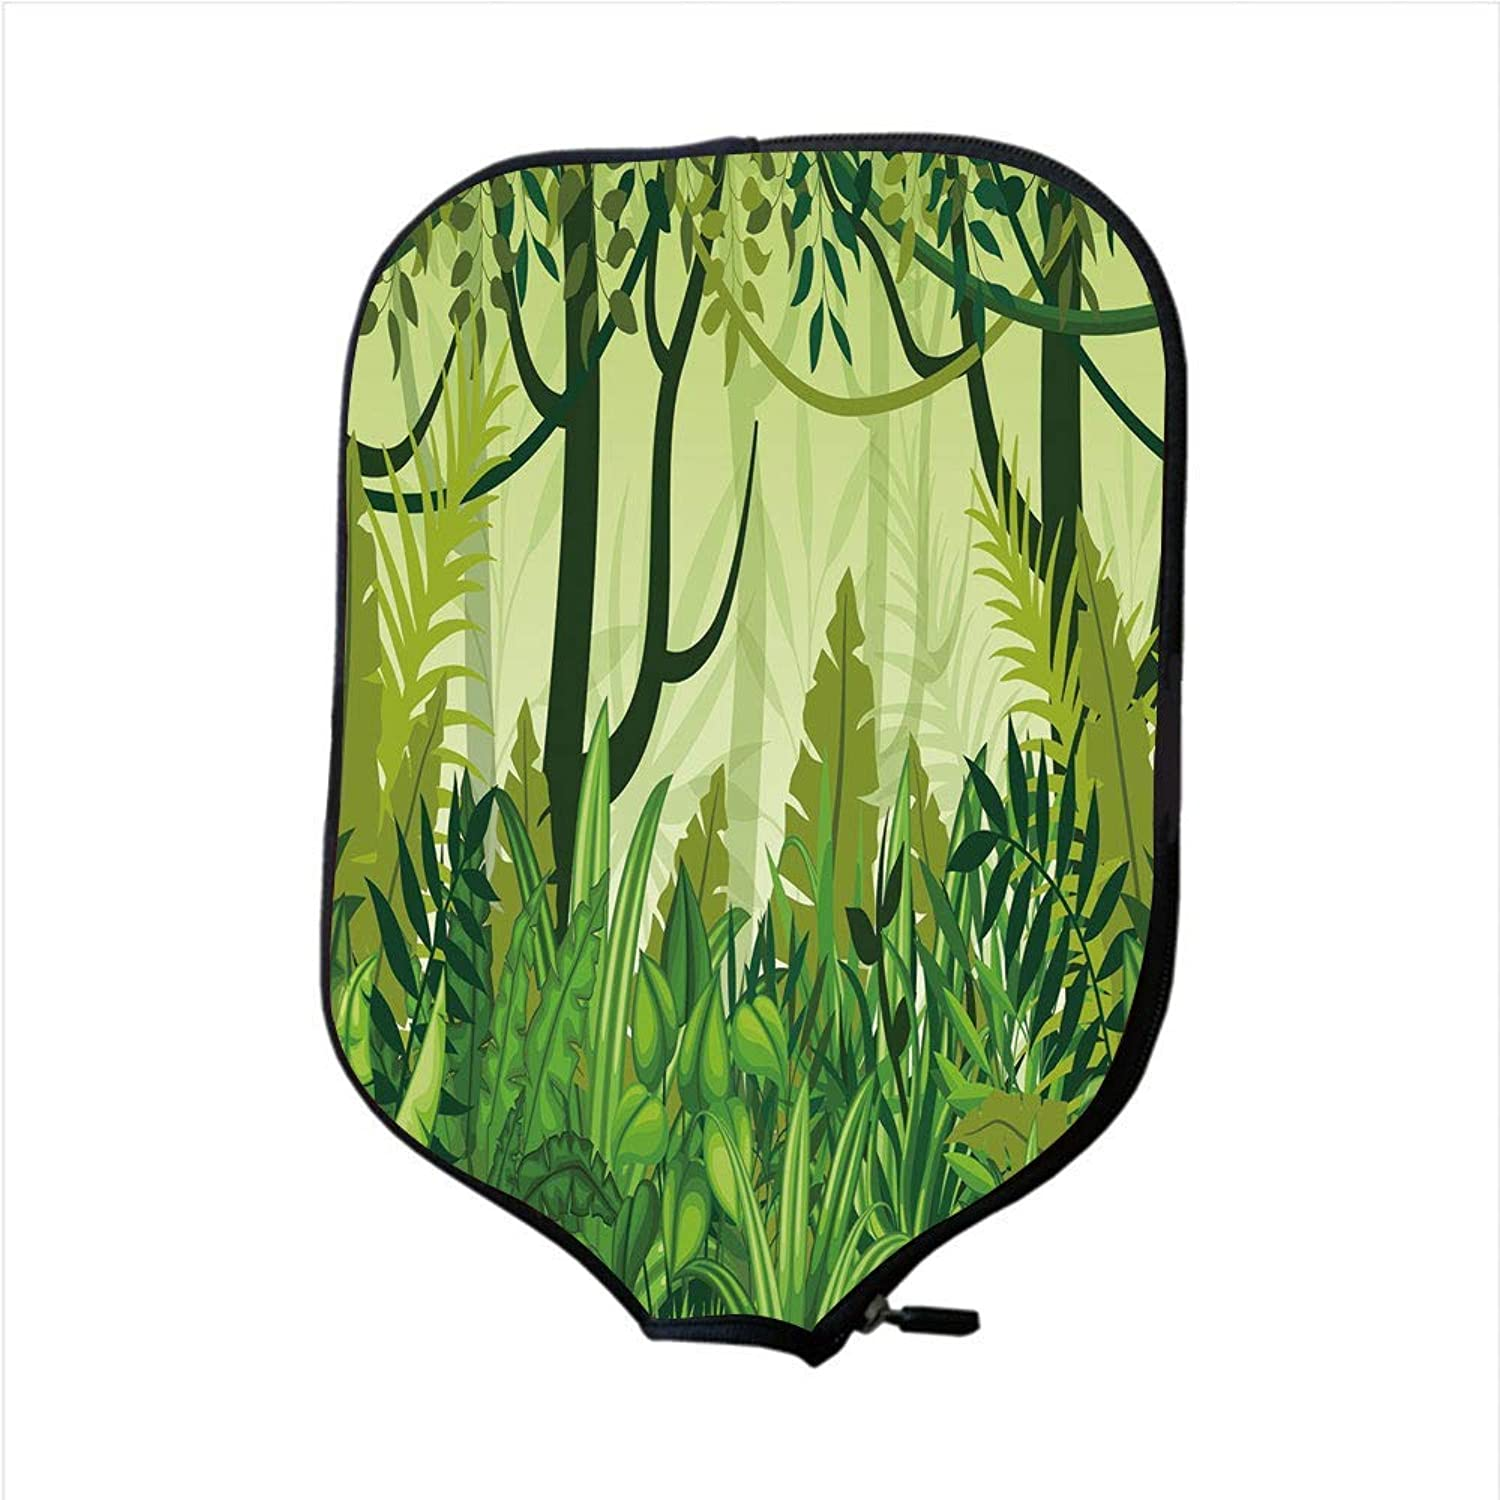 MOKALE Fine Neoprene Pickleball Paddle Racket Cover Case,Plant,Cartoon Style Jungle Depiction Hand Drawn Digital Rainforest Leaves Bushes Trees,Jungle Green,Fit for Most Rackets